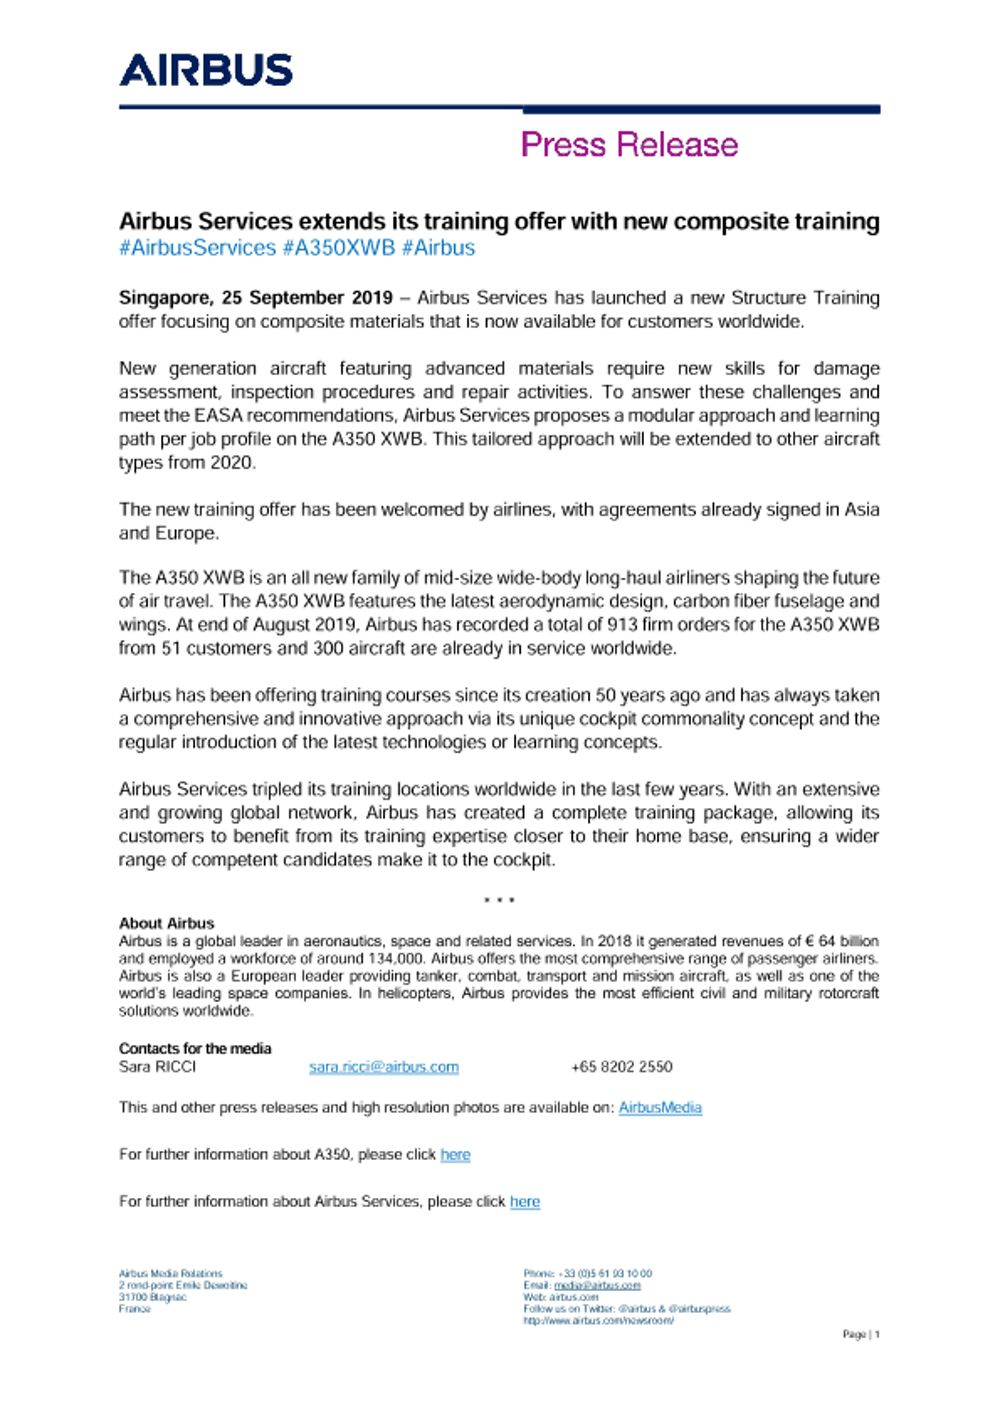 Airbus Services extends its training offer with new composite training